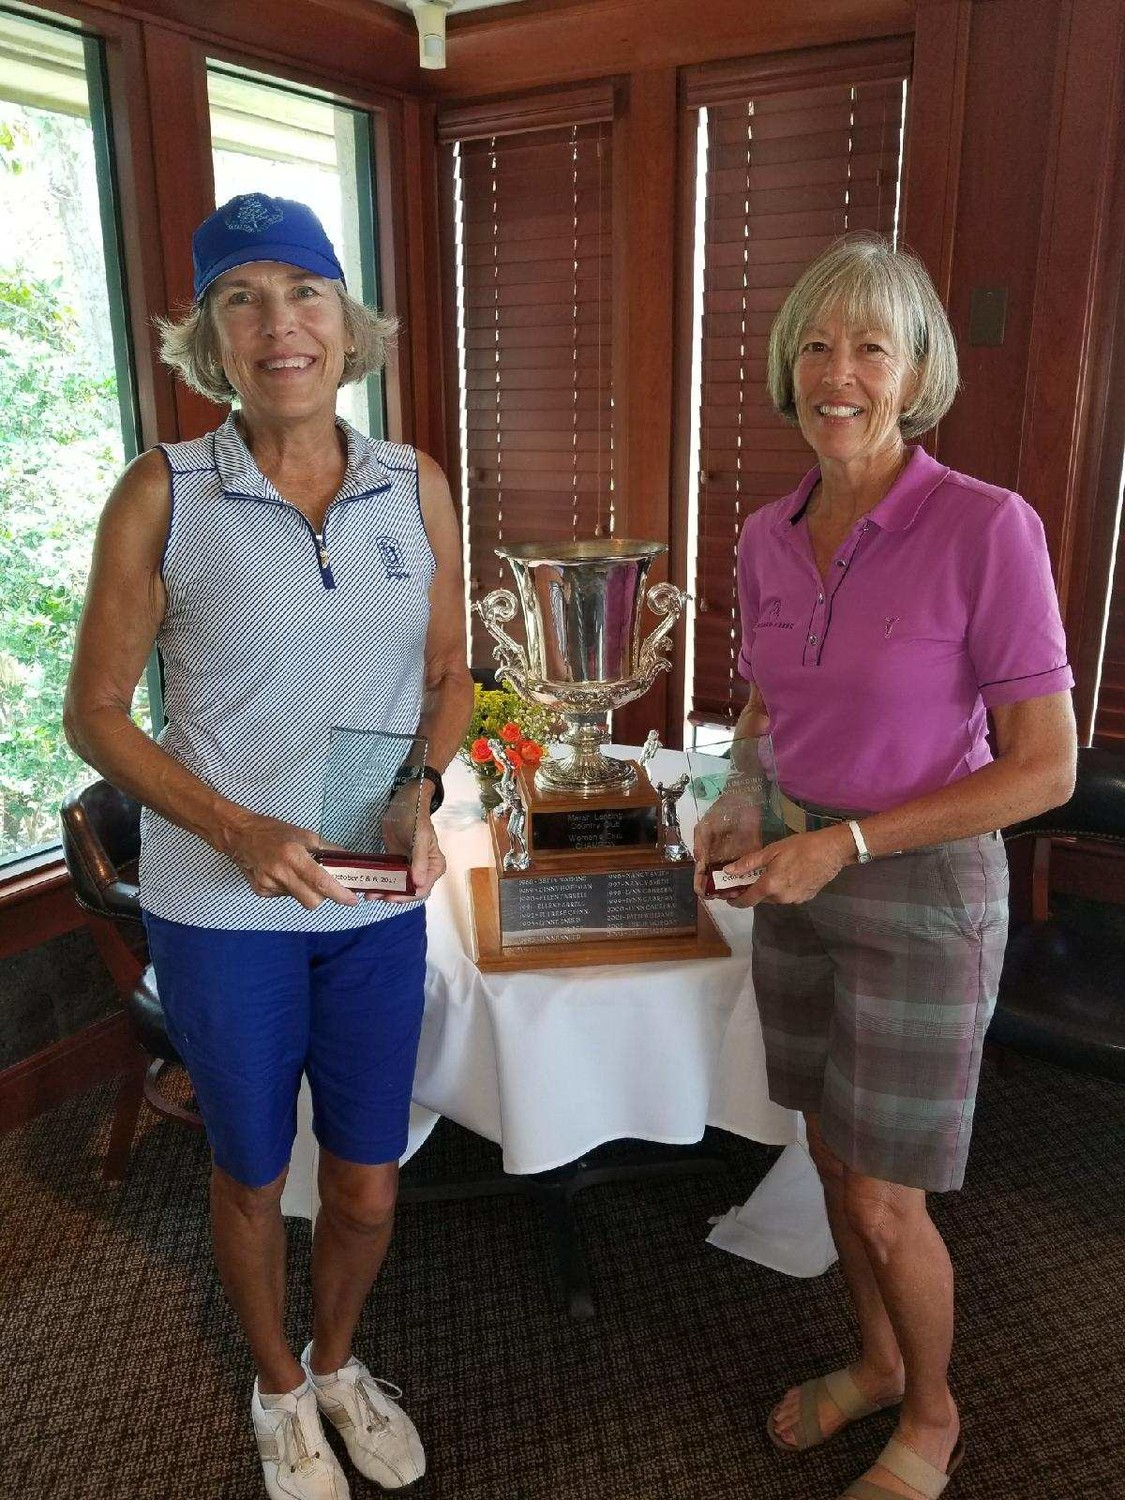 Helen Short (right) won the Marsh Landing Women's Club Championship for the second year in a row, and Peggy Stanley (left) earned the net champion title. The gross champion of the pink tee division was Linda Doran. The tournament was held Oct. 5 and 6 at the Marsh Landing Country Club.